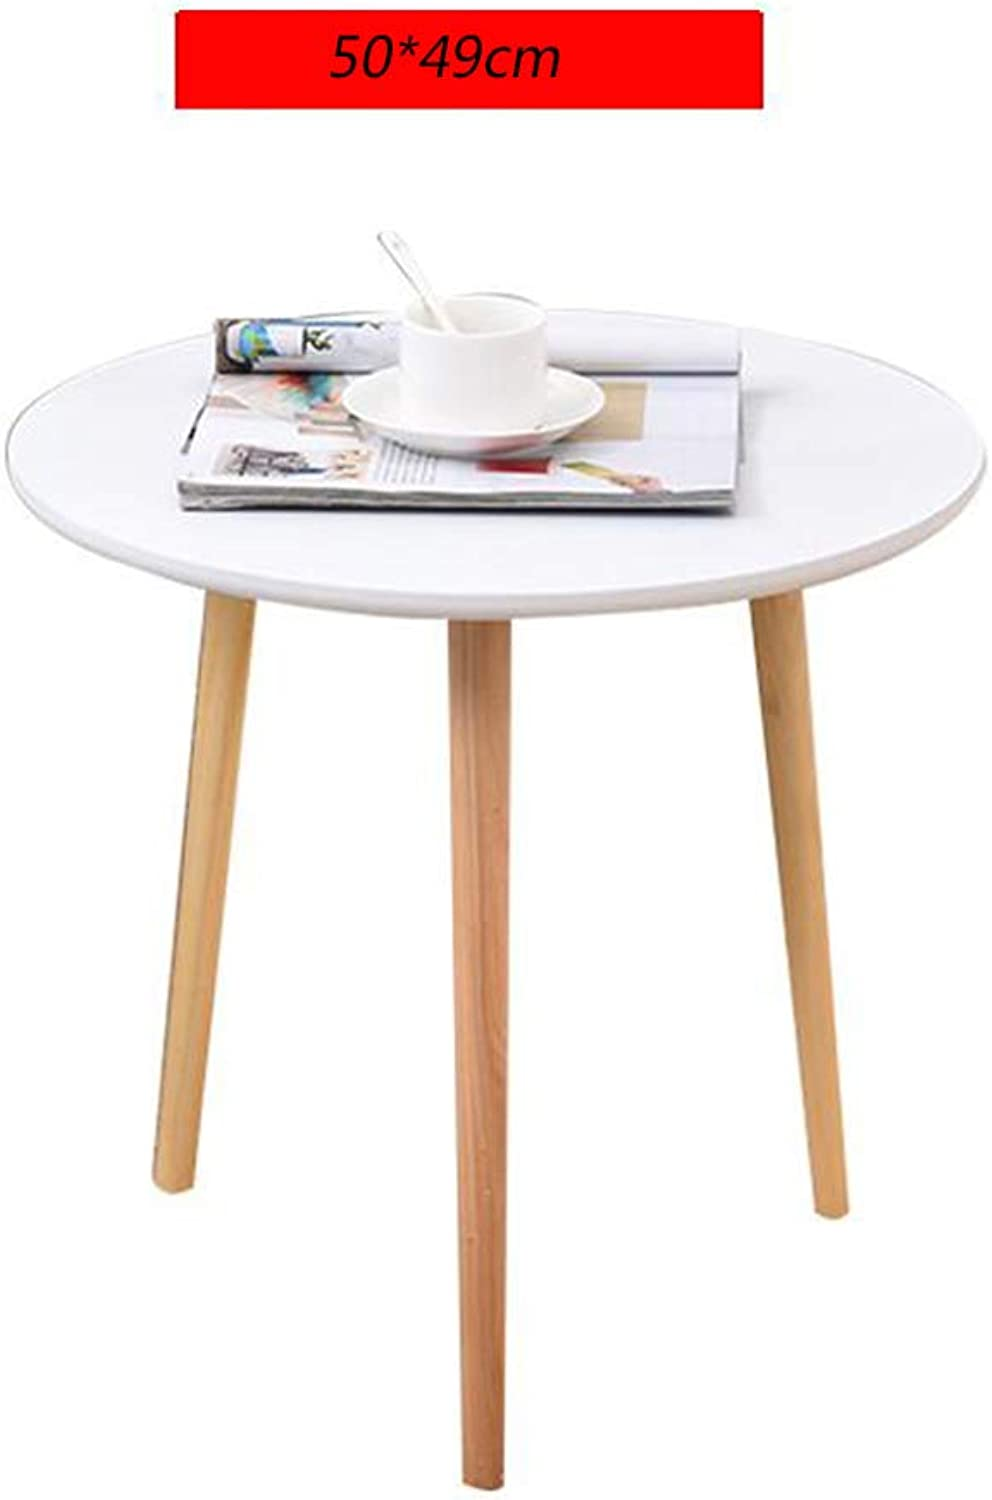 Coffee Table, Modern Furniture Decorated Round Side Table, Solid Wood Table Legs, Living Room, Balcony, Home and Office,C